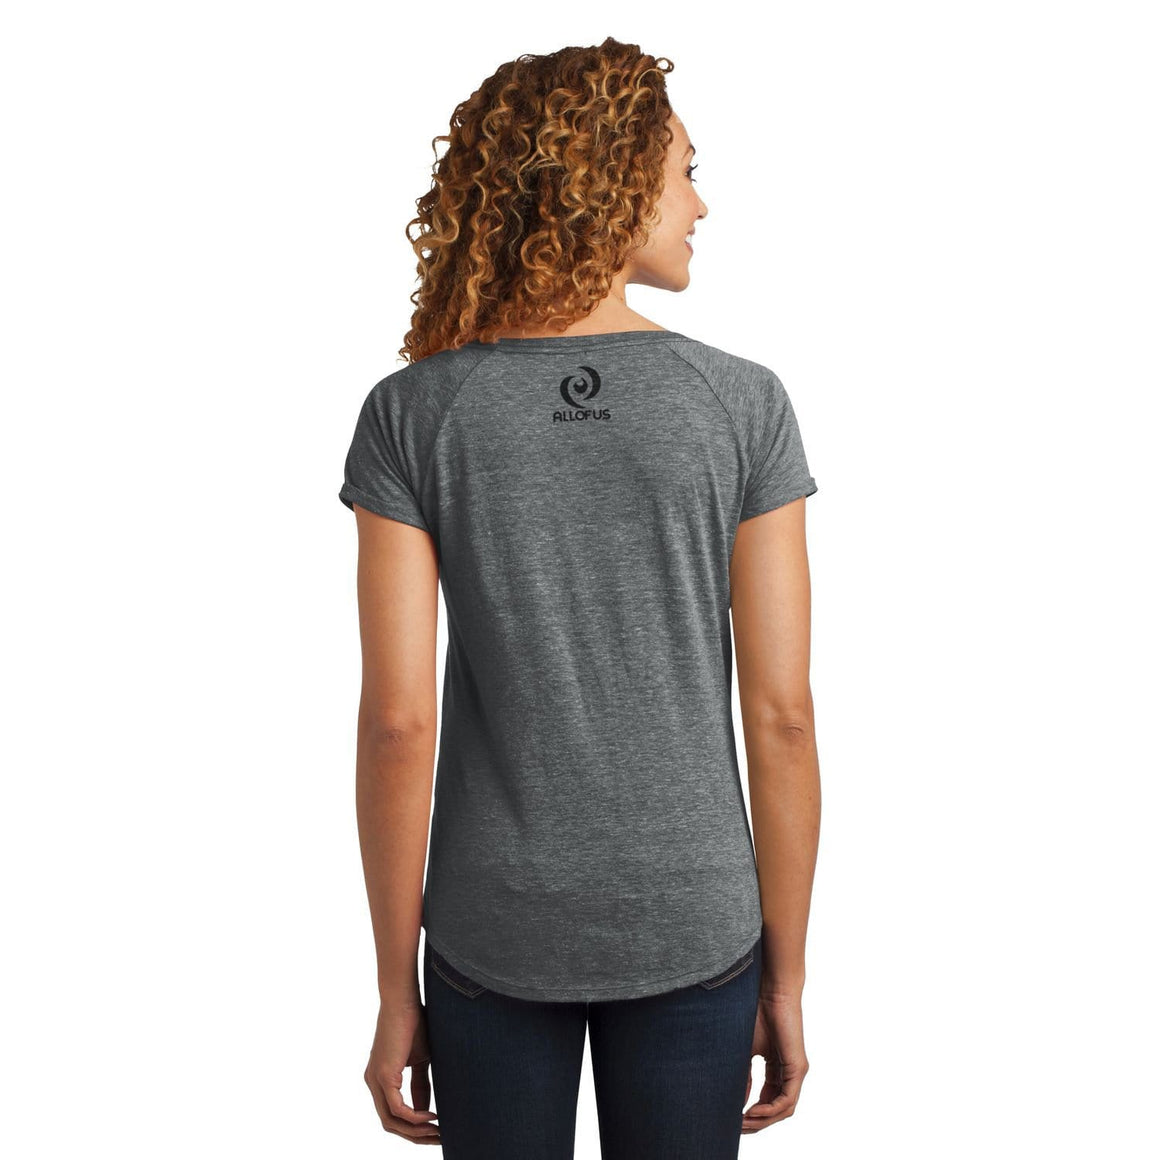 Womens All of Us Grey Heather Tri-Blend Scoop Tee T-shirt